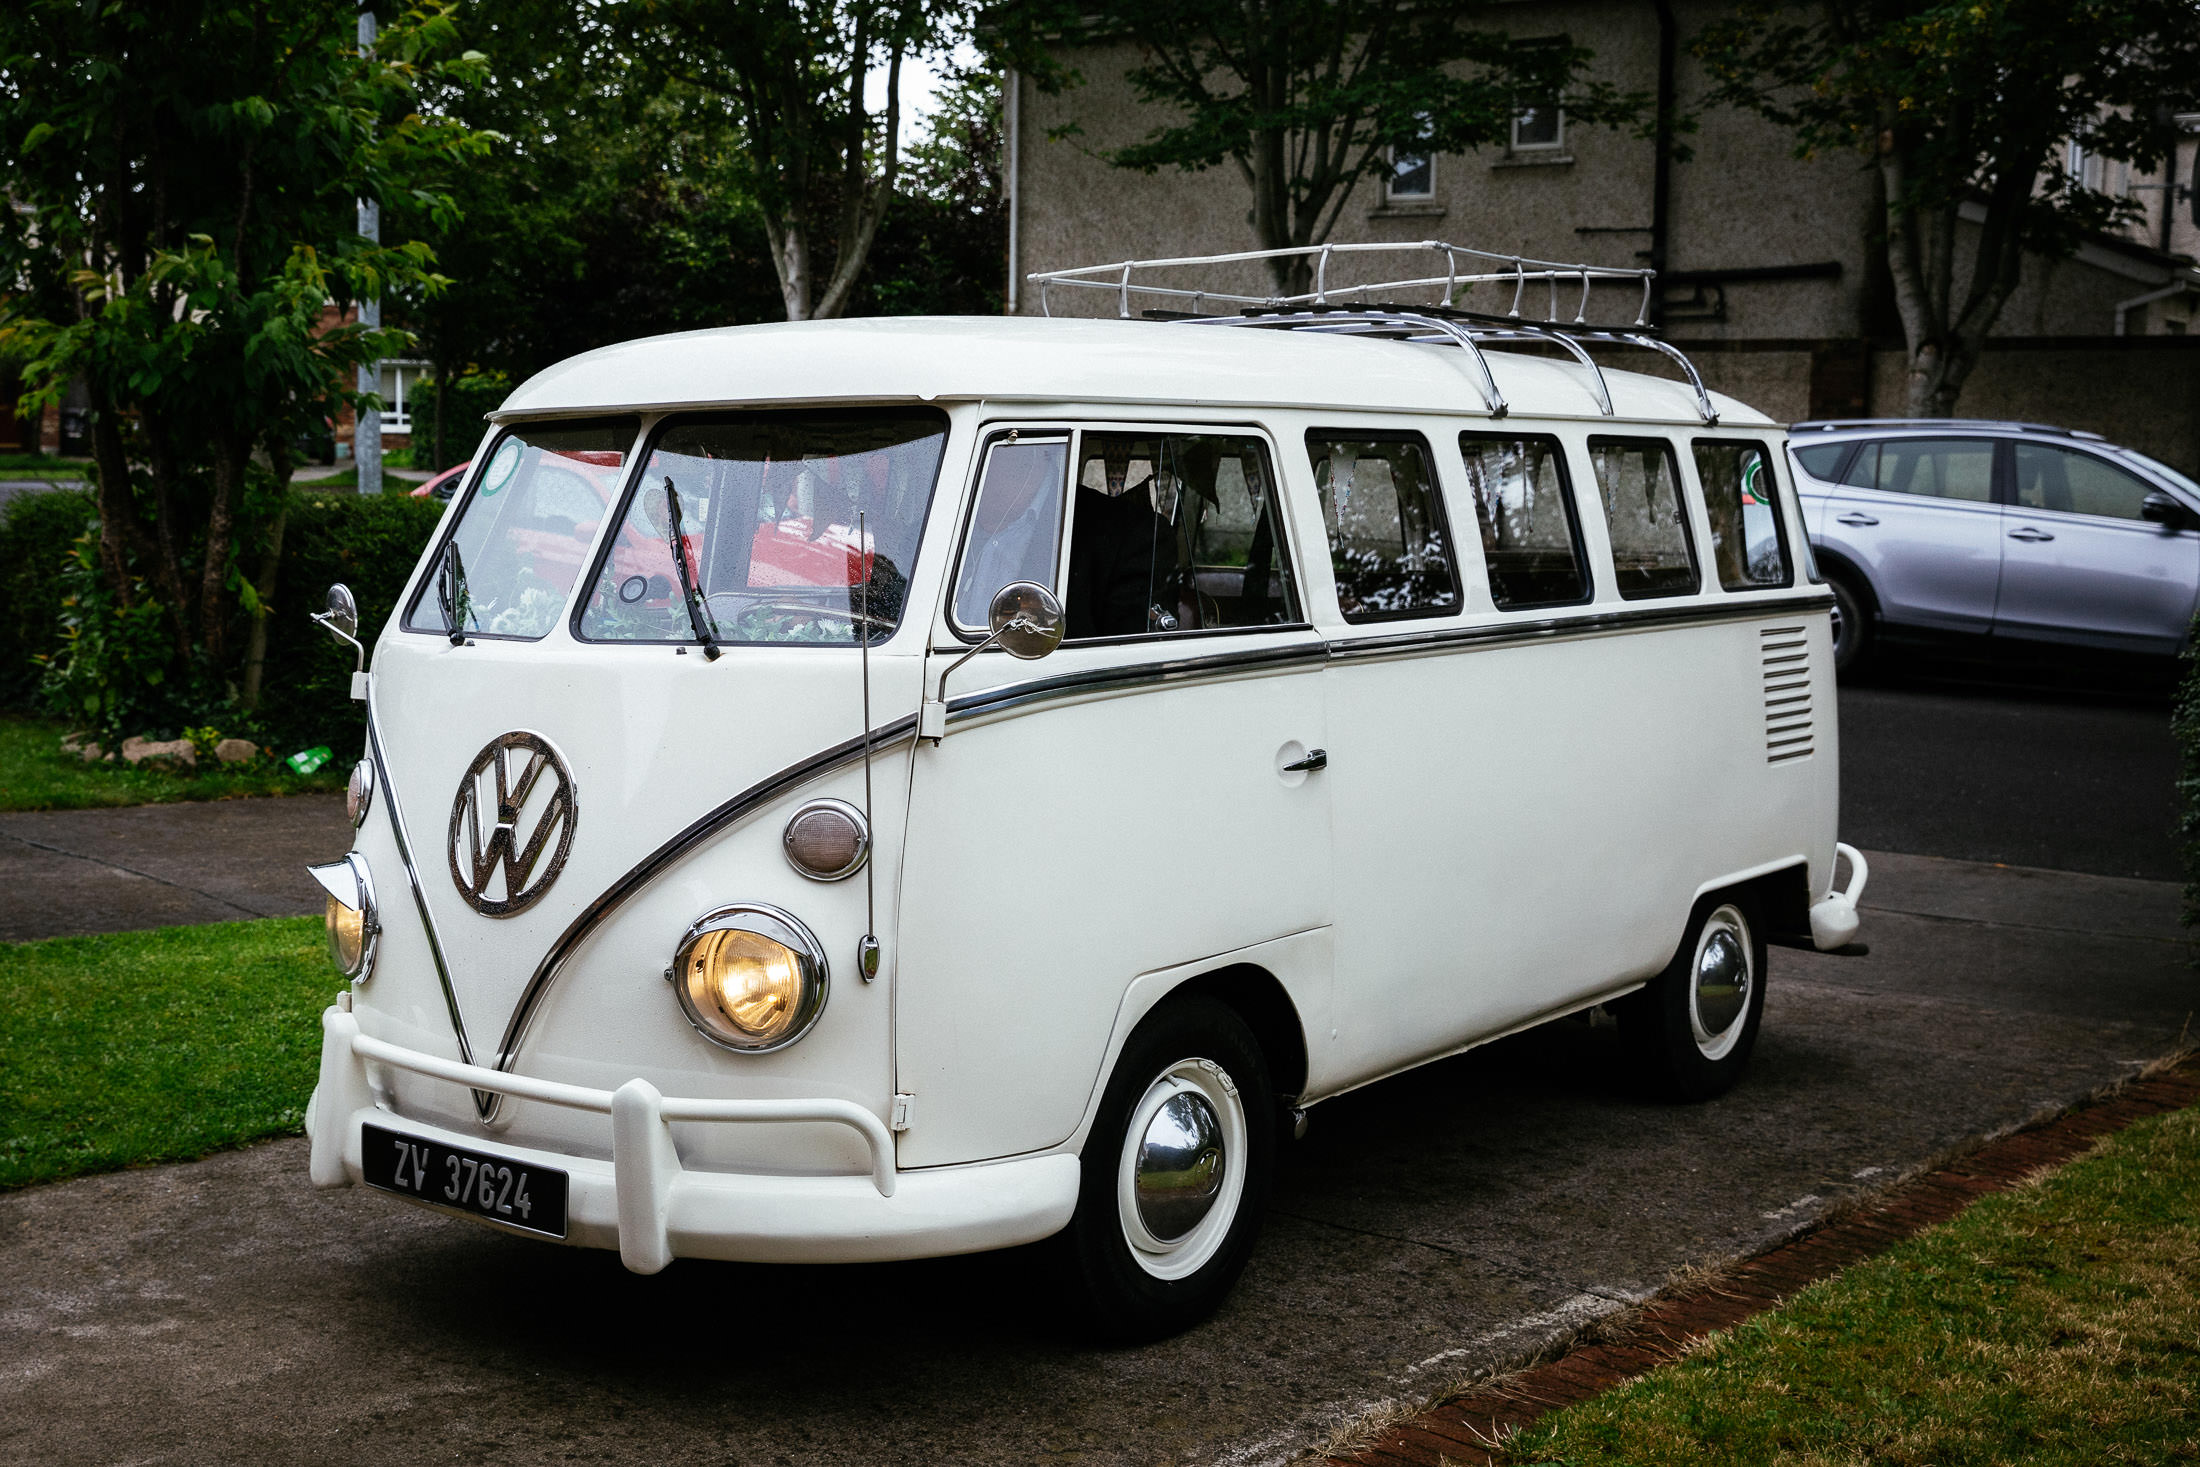 Vintage VW wedding camper van